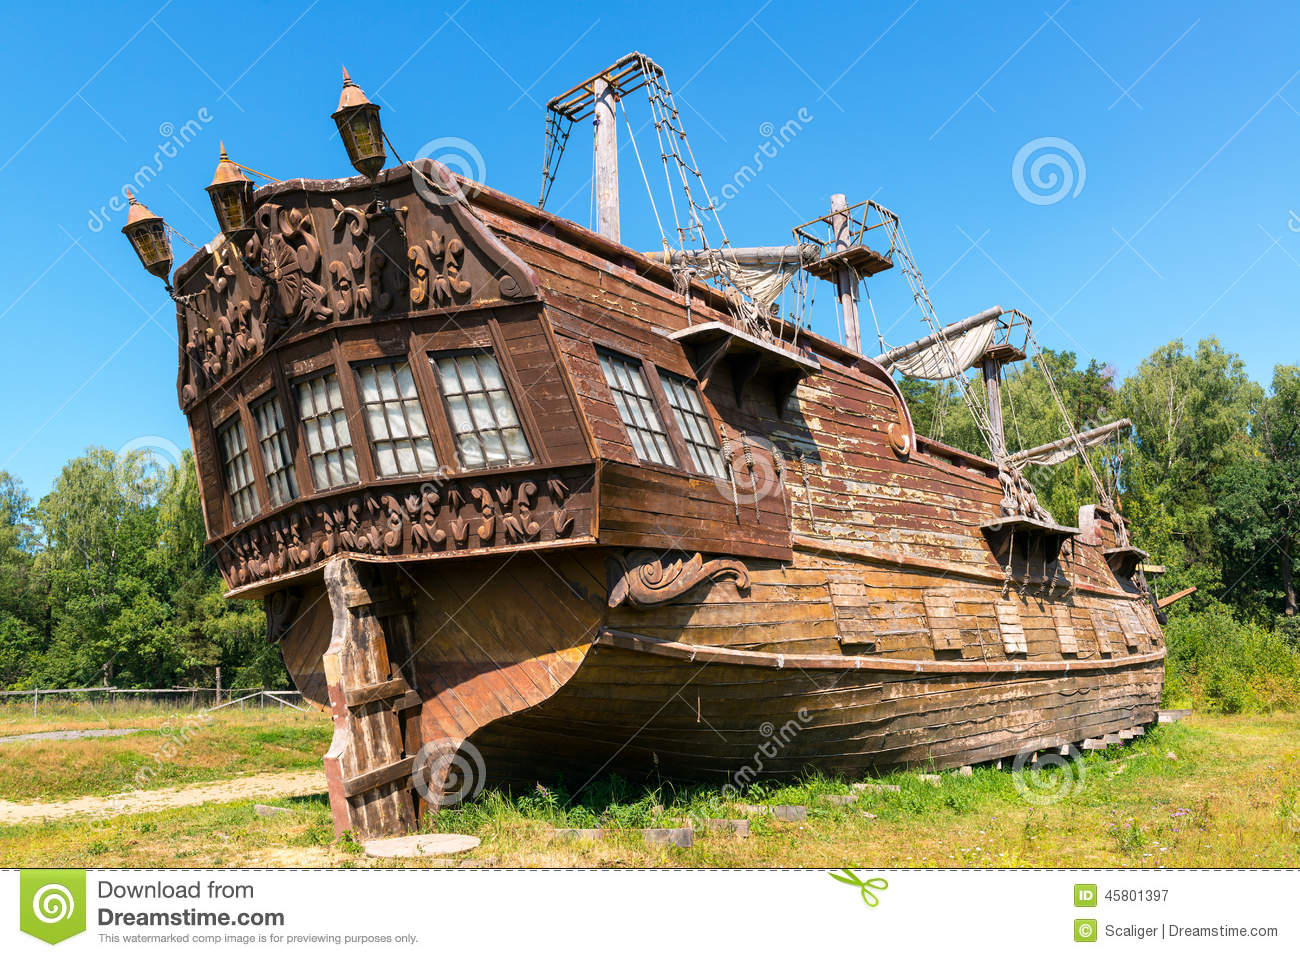 Abandoned Old Sailing Ship Stock Photo - Image: 45801397